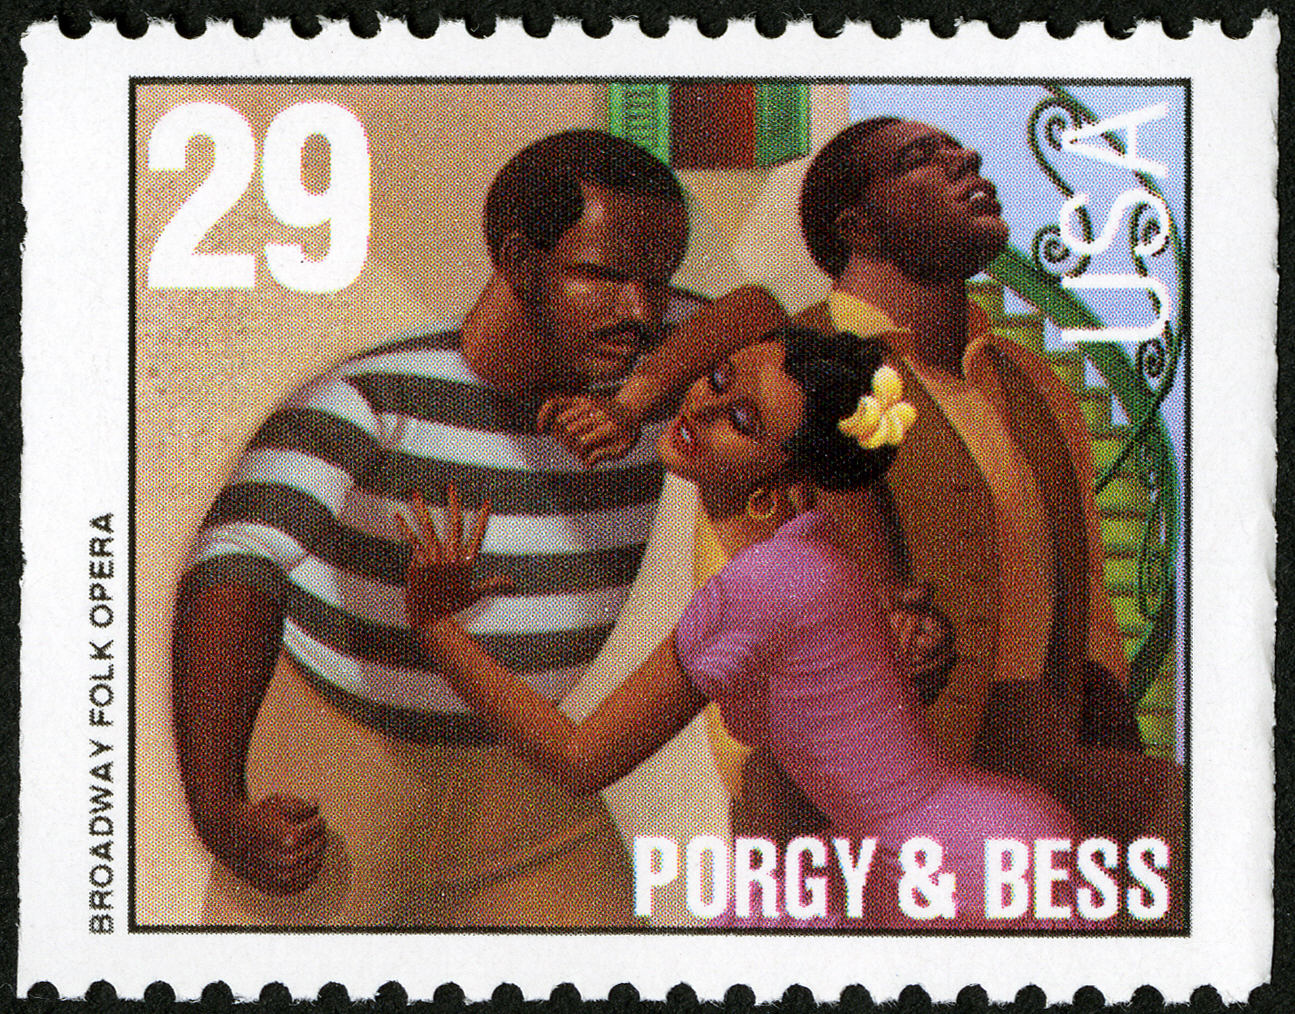 Postage stamp depicting singing man in background, and a woman leaning into the chest of a man in foreground.